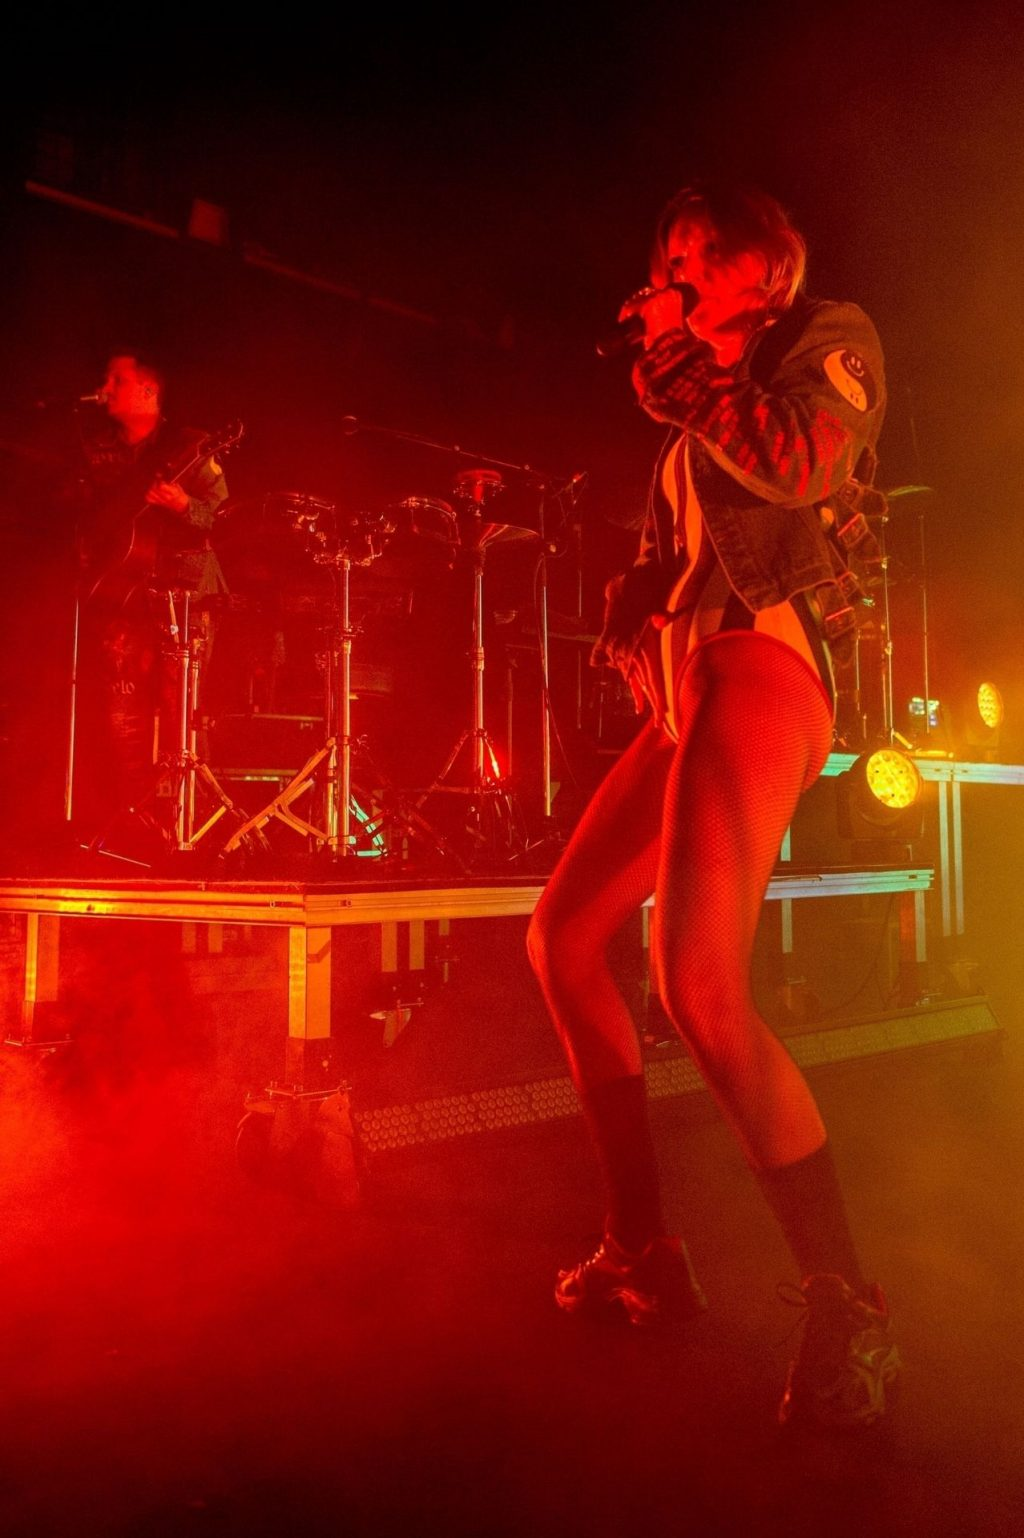 Tove Lo is in Concert Performing Live at O2 Forum Kentish Town in London (76 Photos)